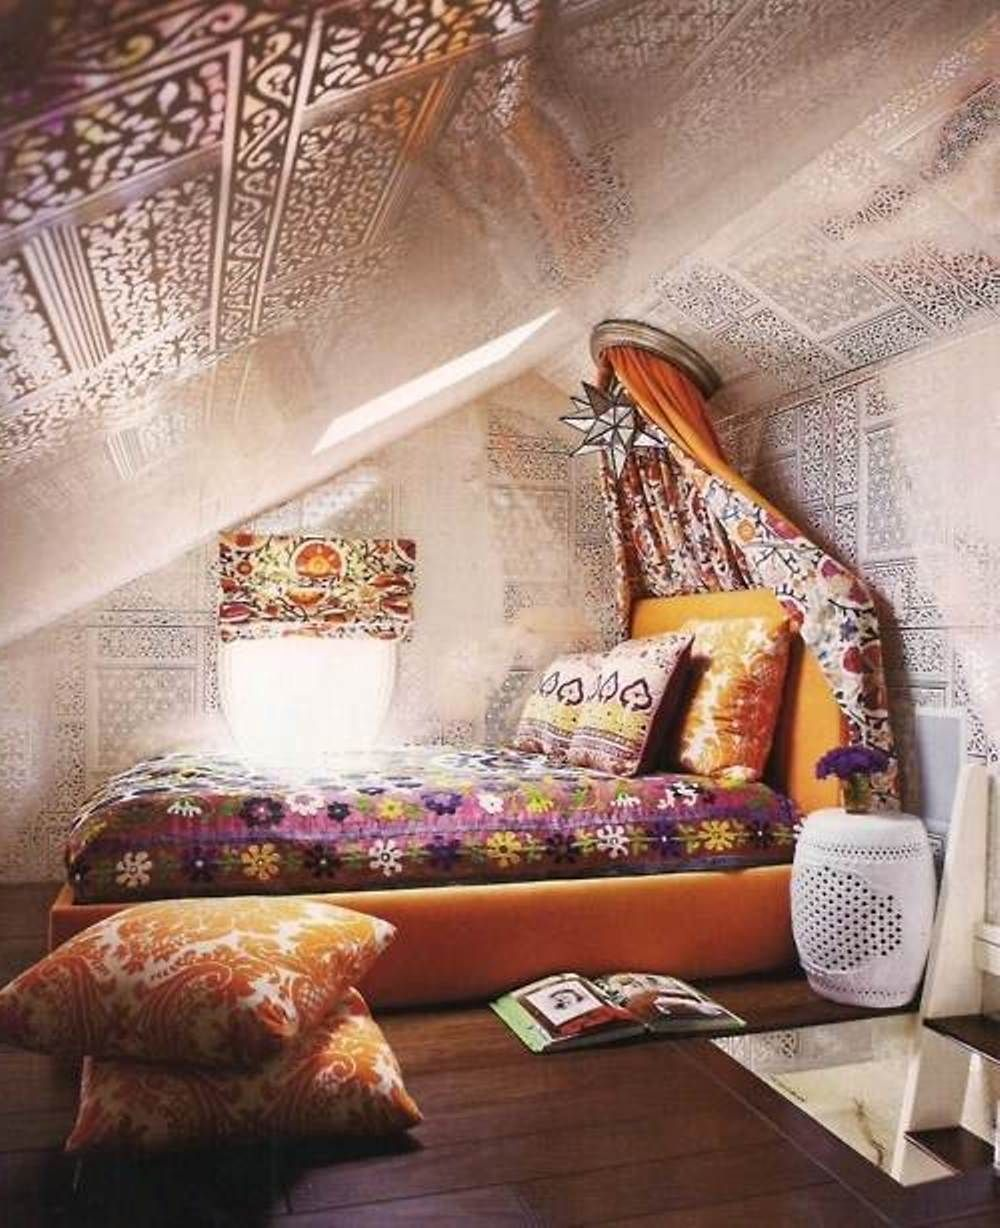 Boho teen girl attic room ideas rooms pinterest for Bedroom ideas boho